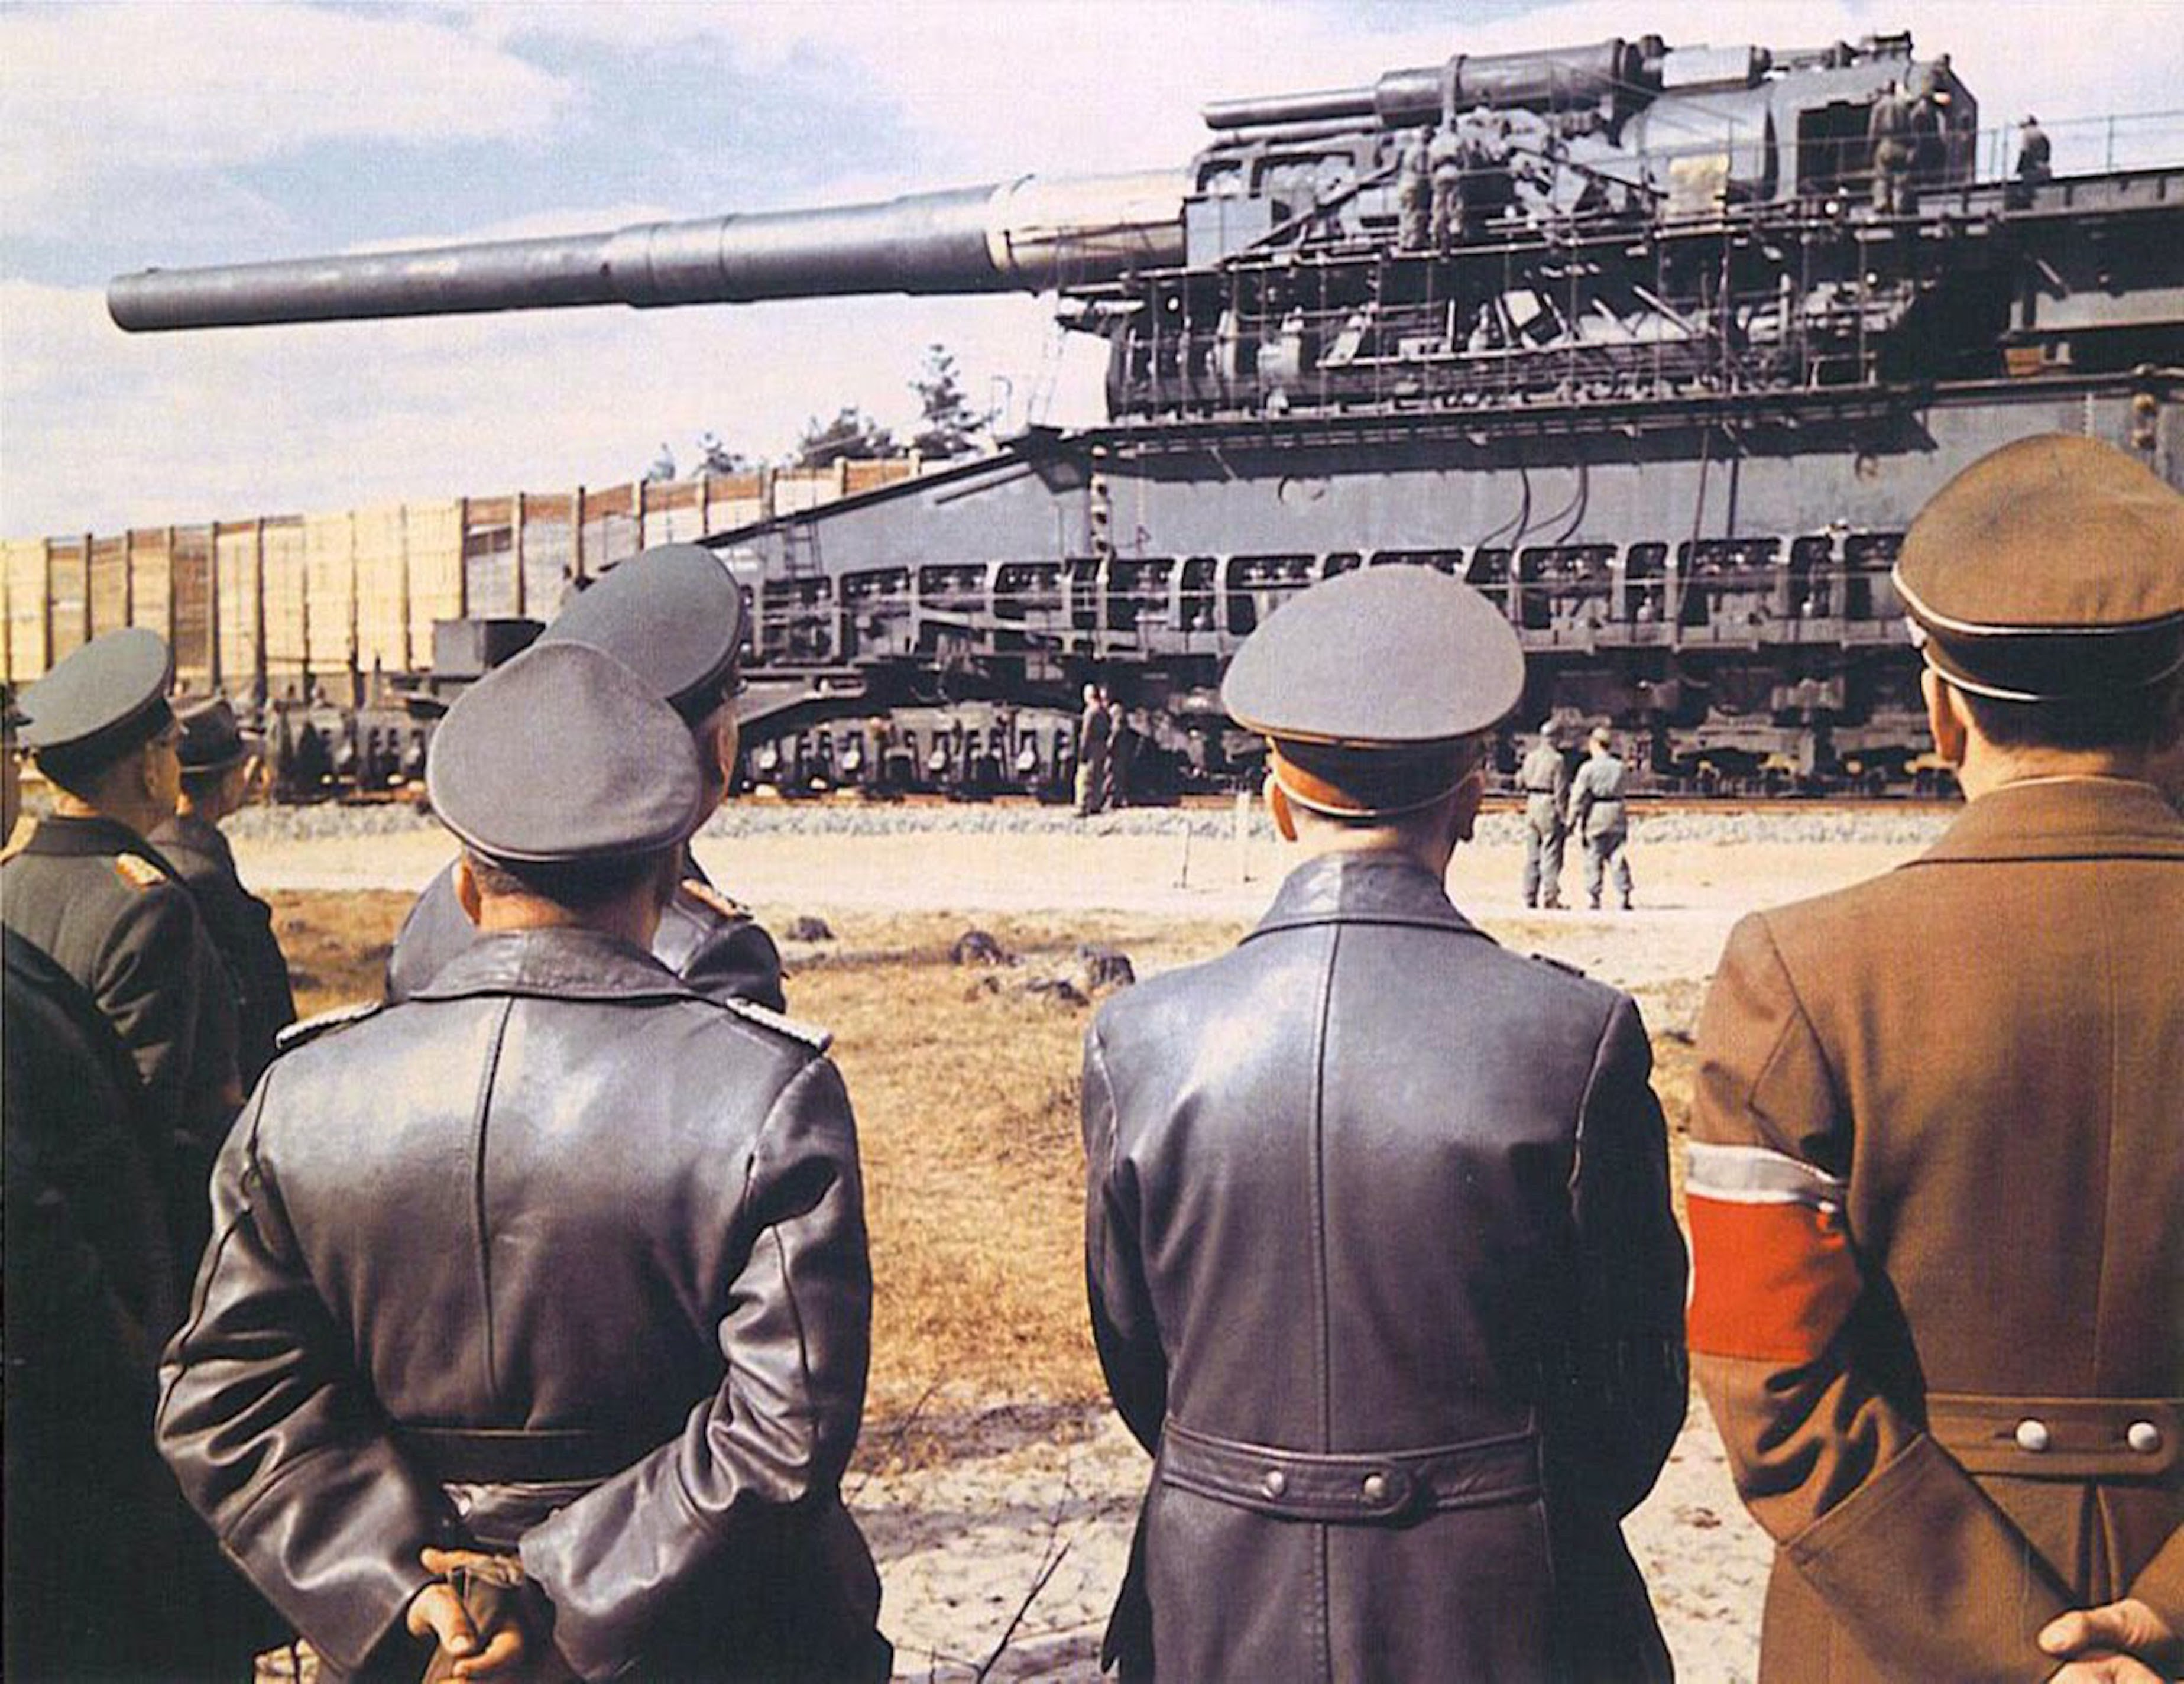 Inspecting the Heavy Gustav, Adolf Hitler (second from the right), Albert Speer (on the left) and their generals with the largest caliber rifled weapon ever used in combat, 1941 (foto Pinterest)